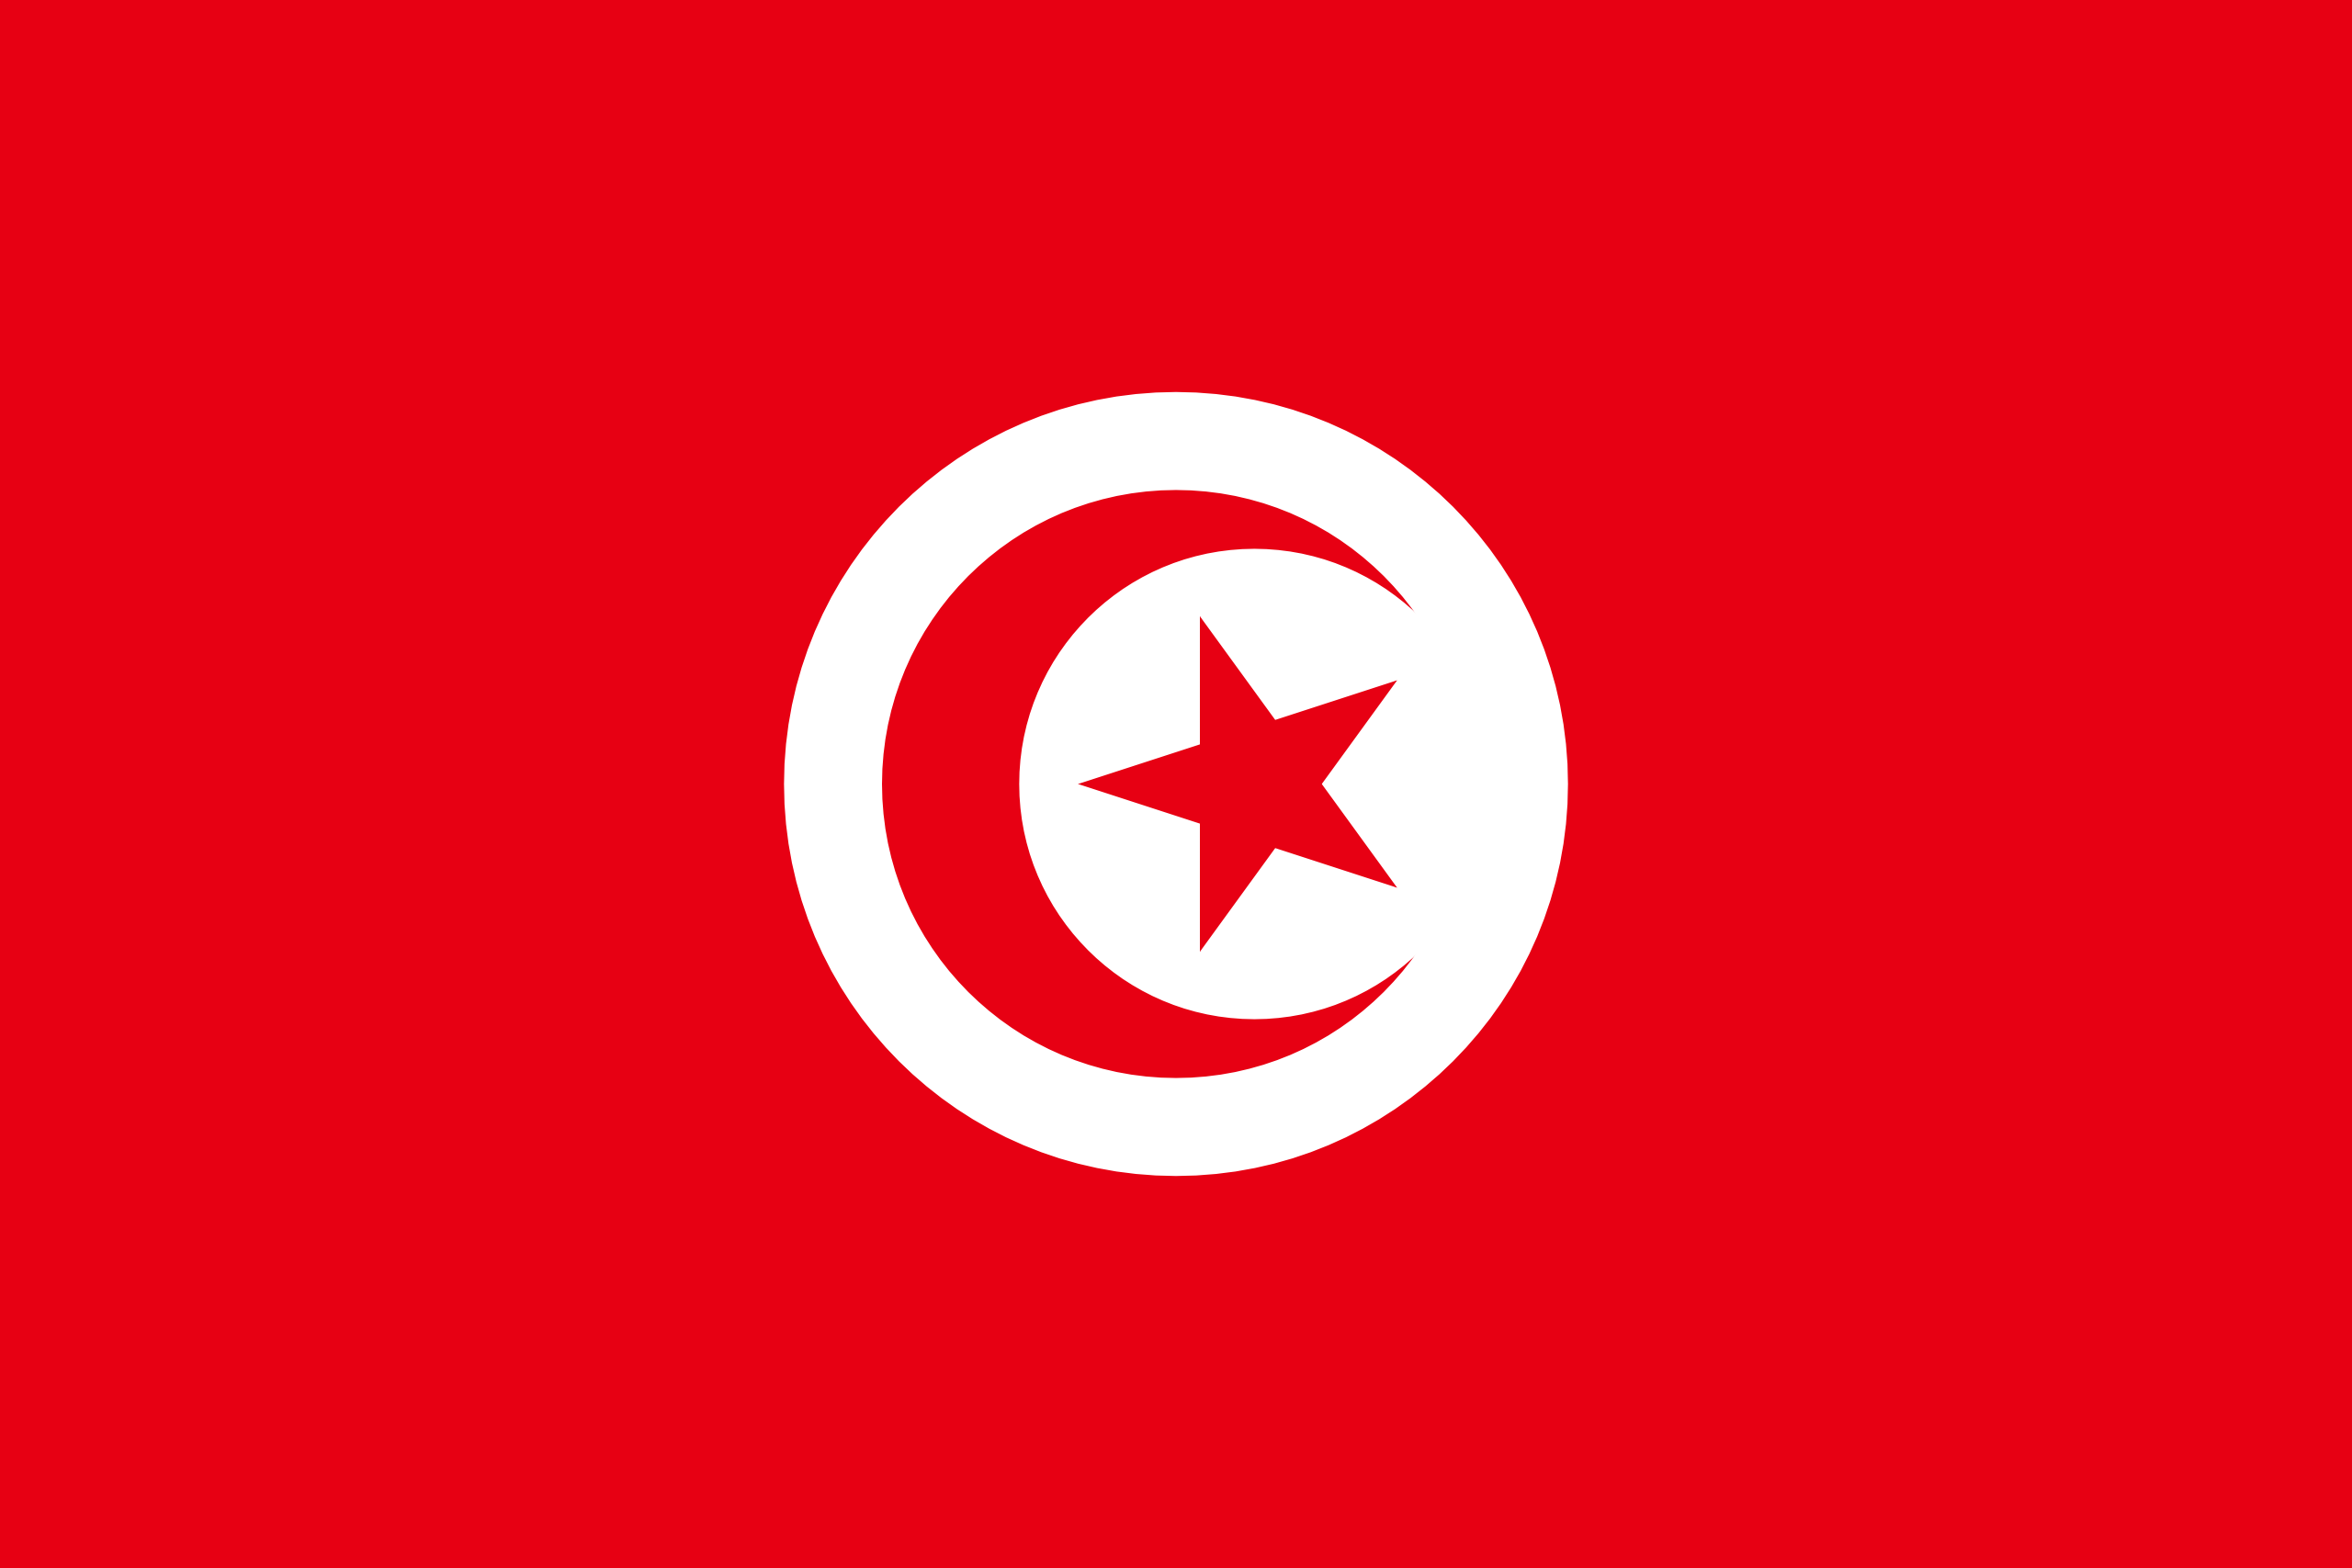 Tunisia banner transparent